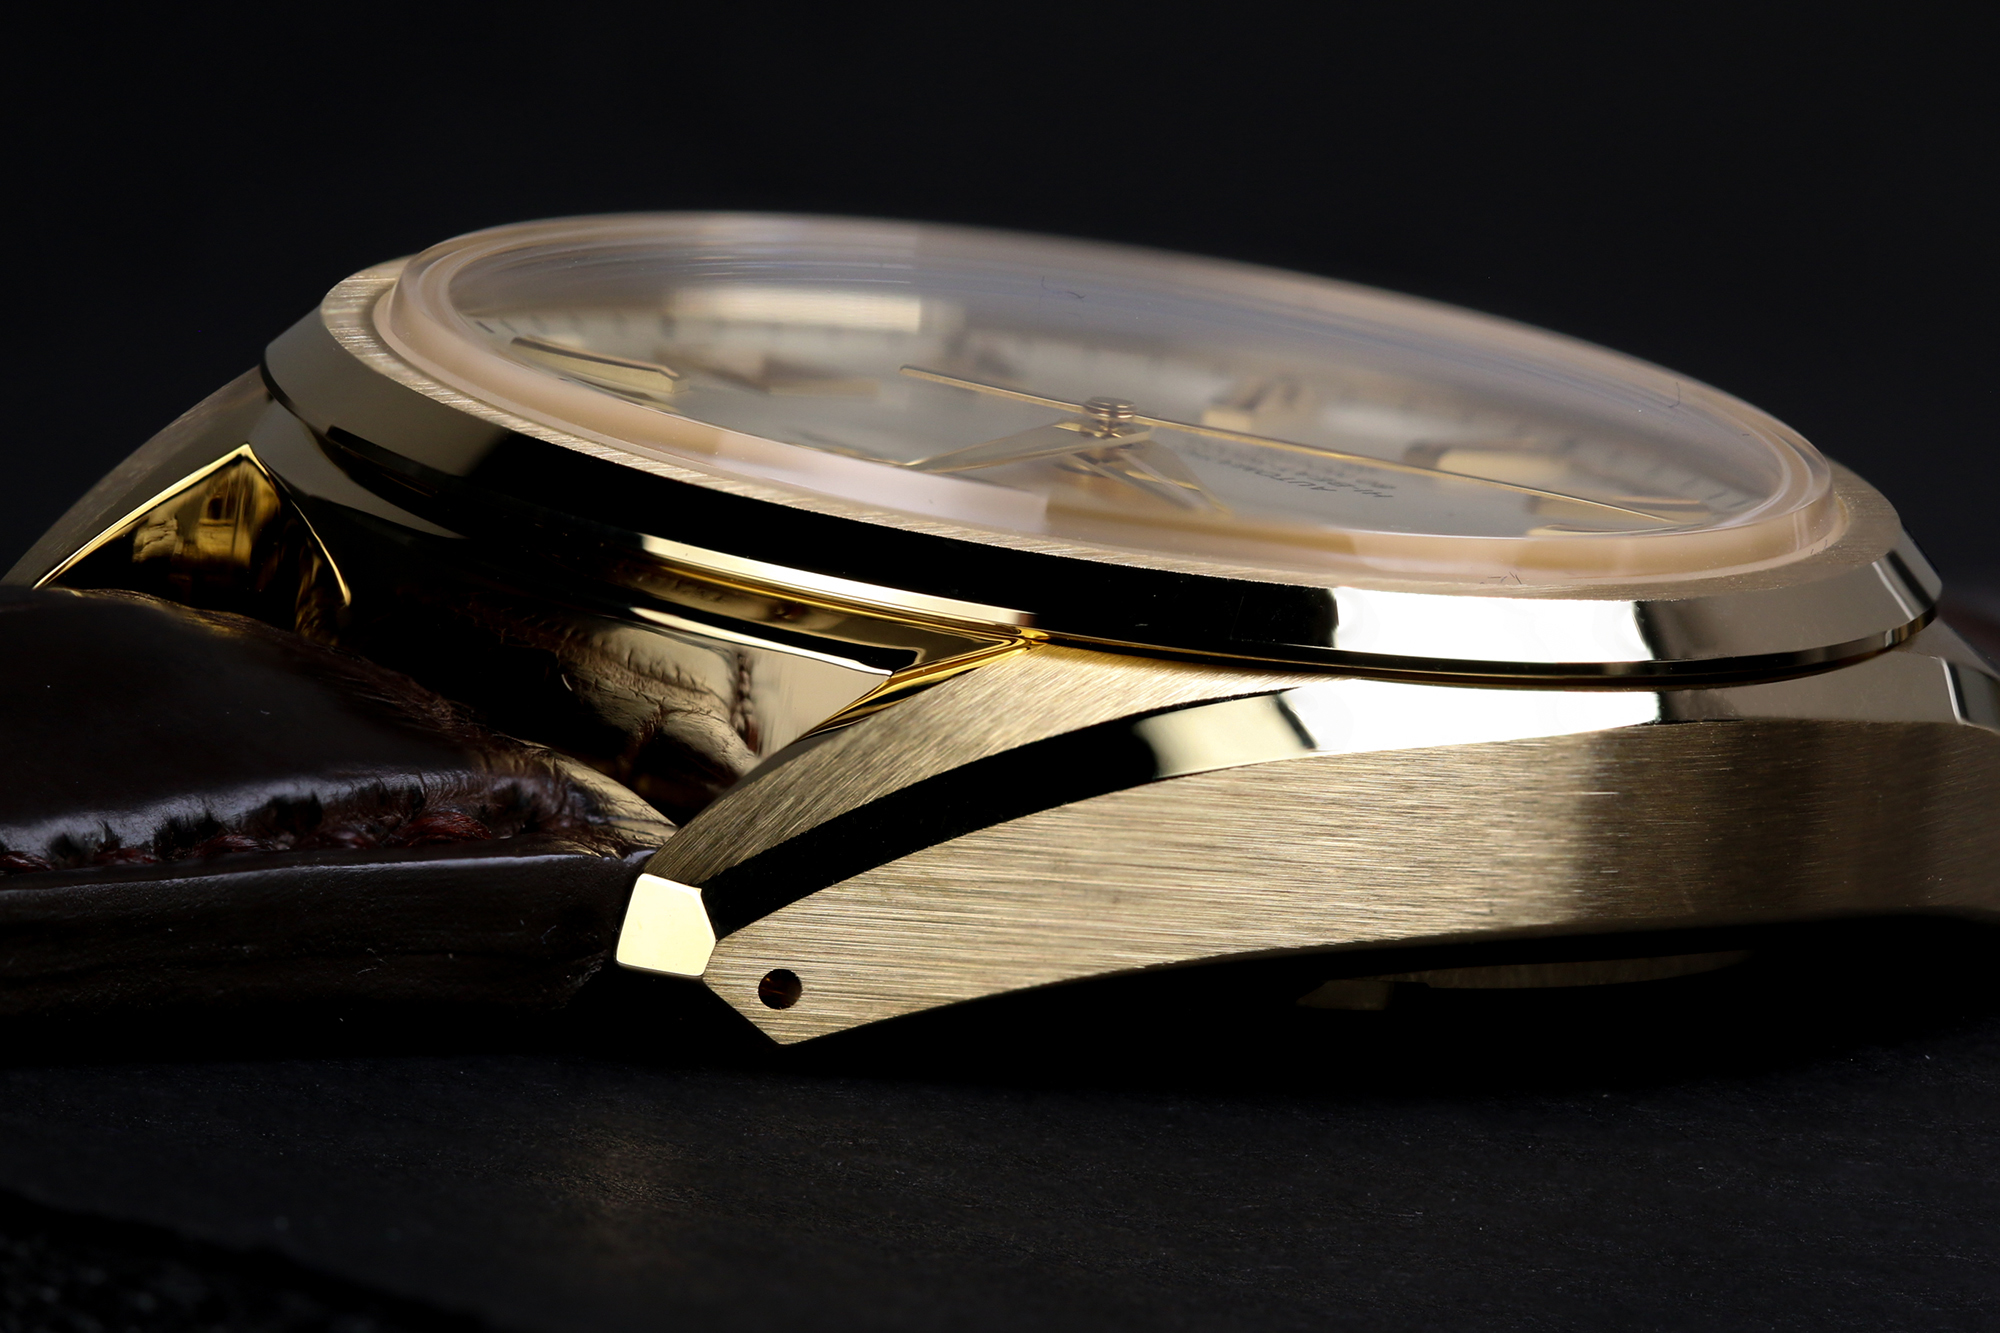 Grand Seiko SLGH002 gold case in profile.